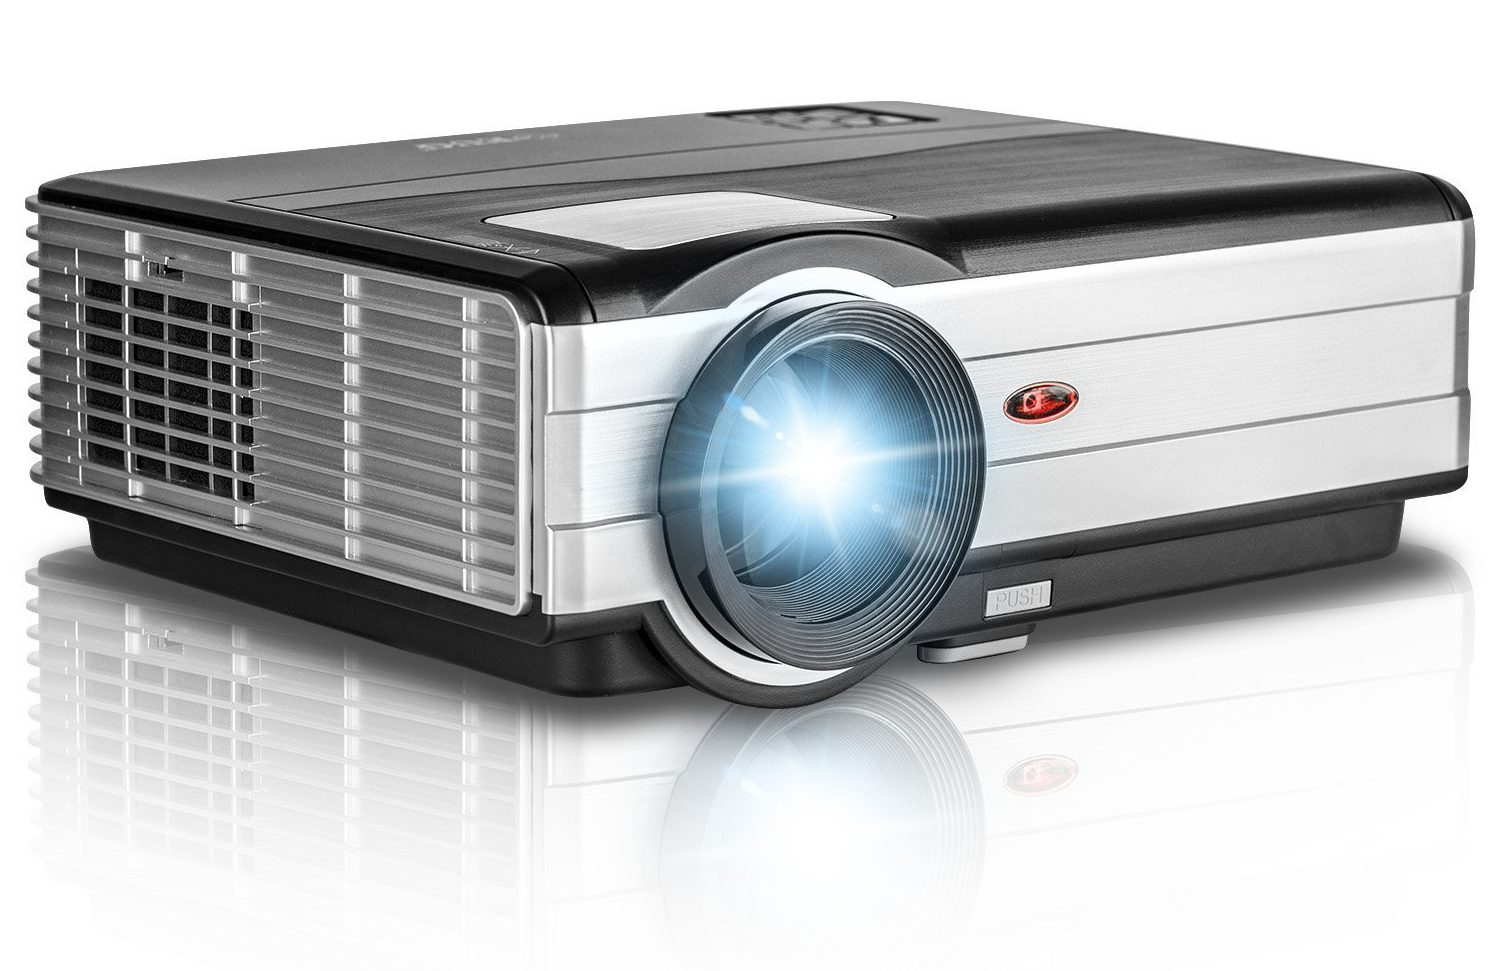 Hd home cinema projector model hd 198 home design for Best small hd projector